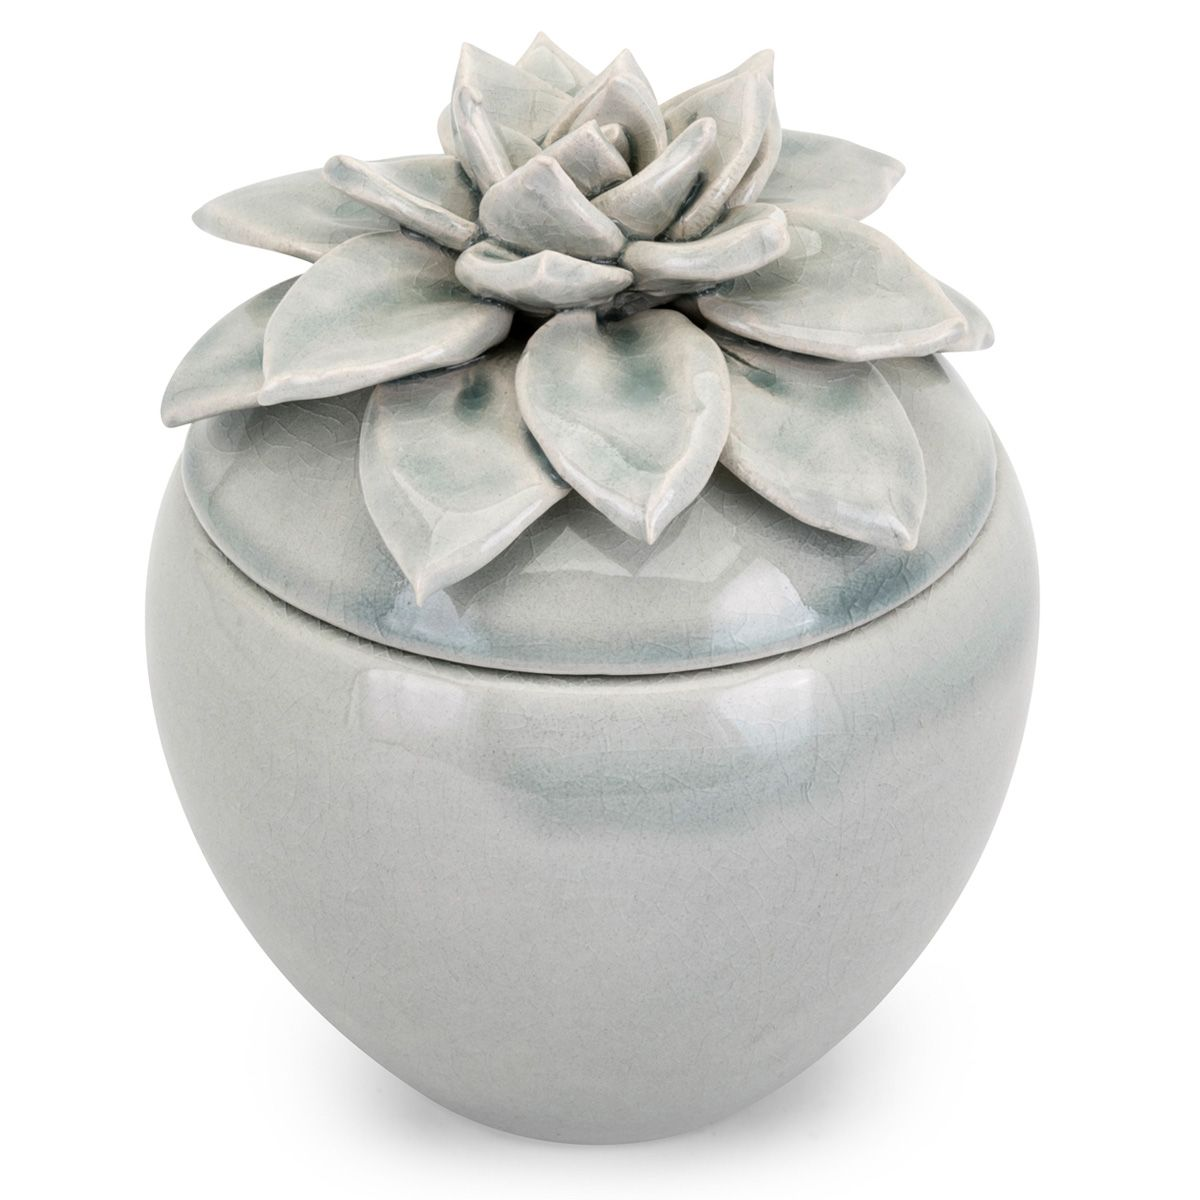 Blue Petals Small Lidded Canister